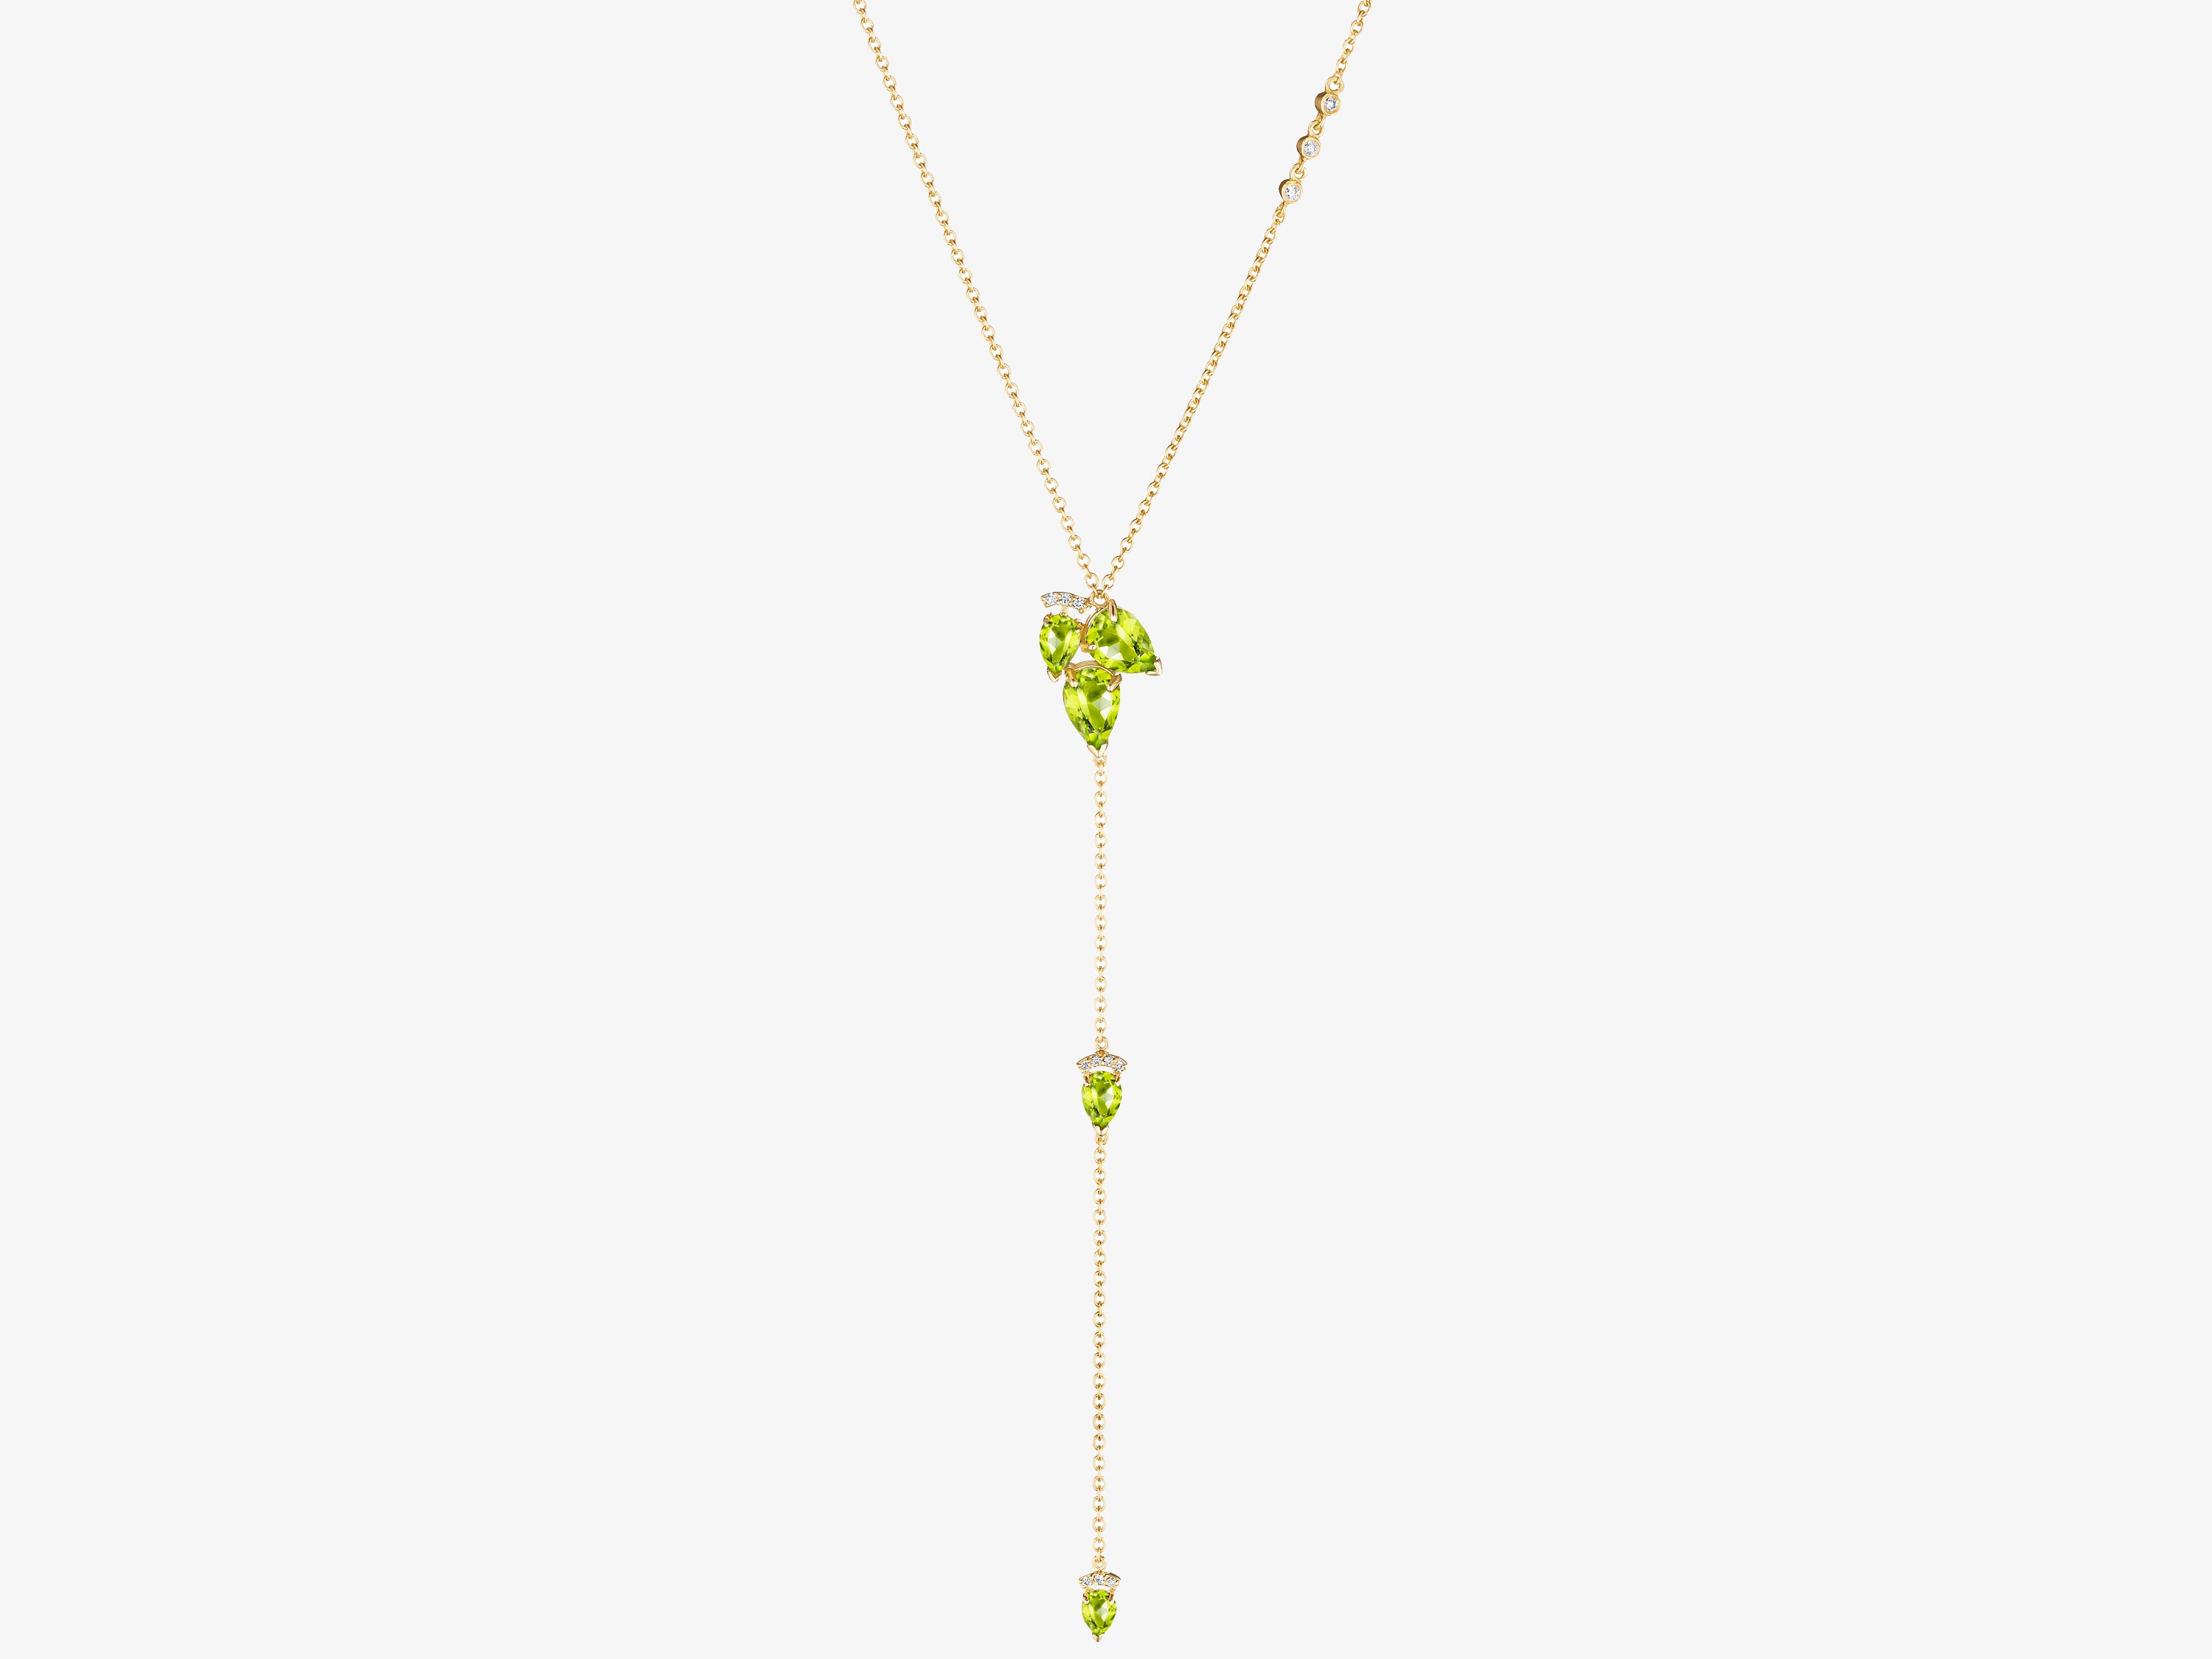 Necklace with Pear Shaped Cluster Gemstones and Pear Shaped Gemstone Drop